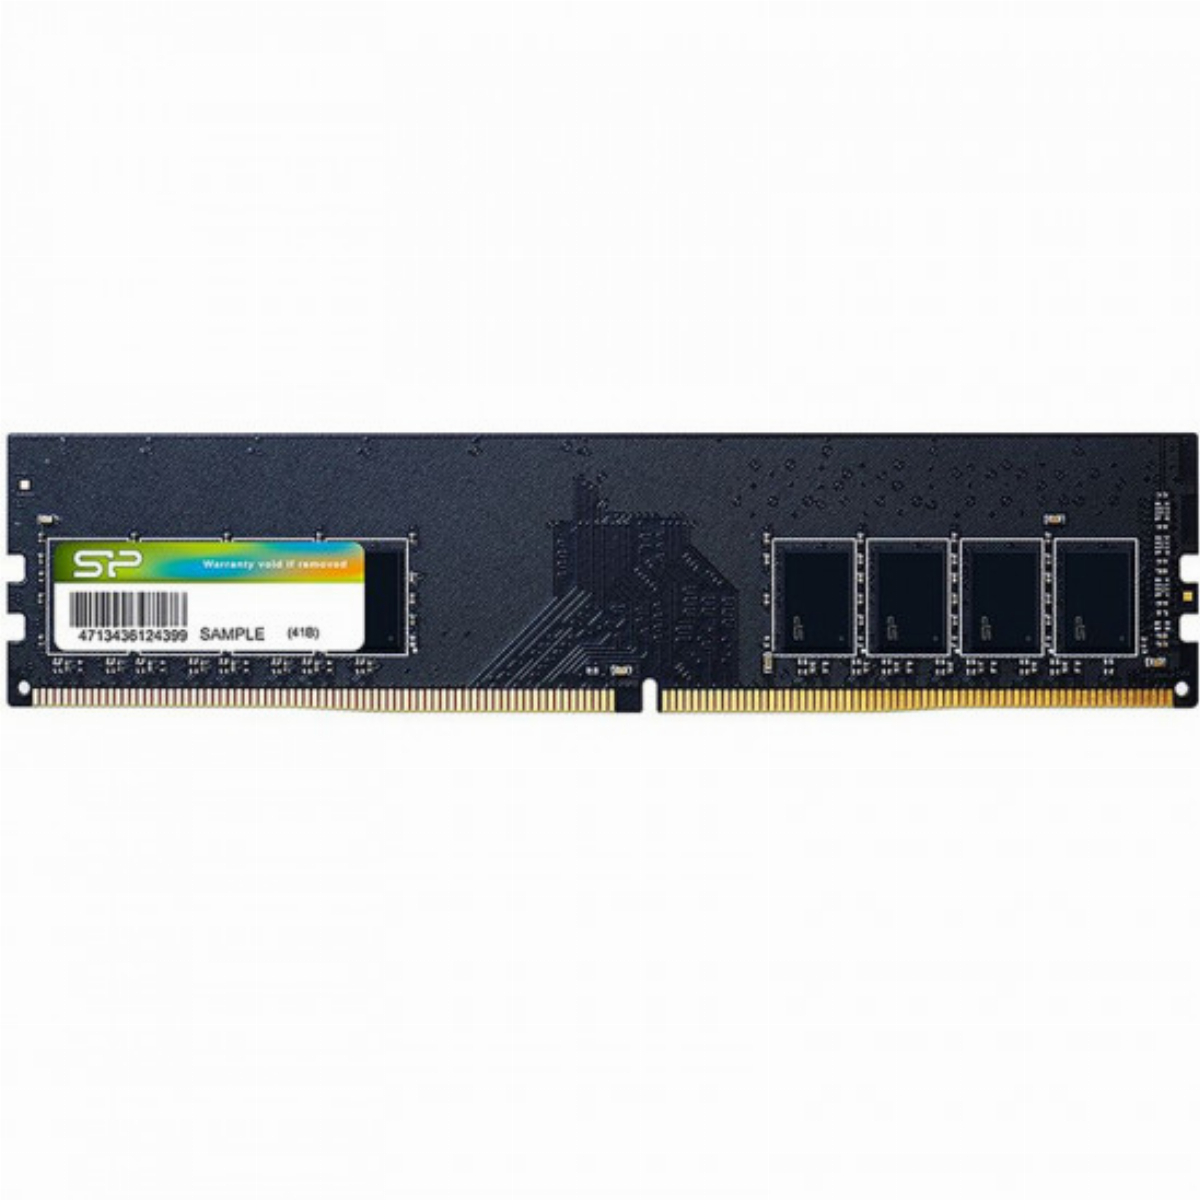 Памет Silicon Power 16GB DDR4 3200MHz UDIMM CL22